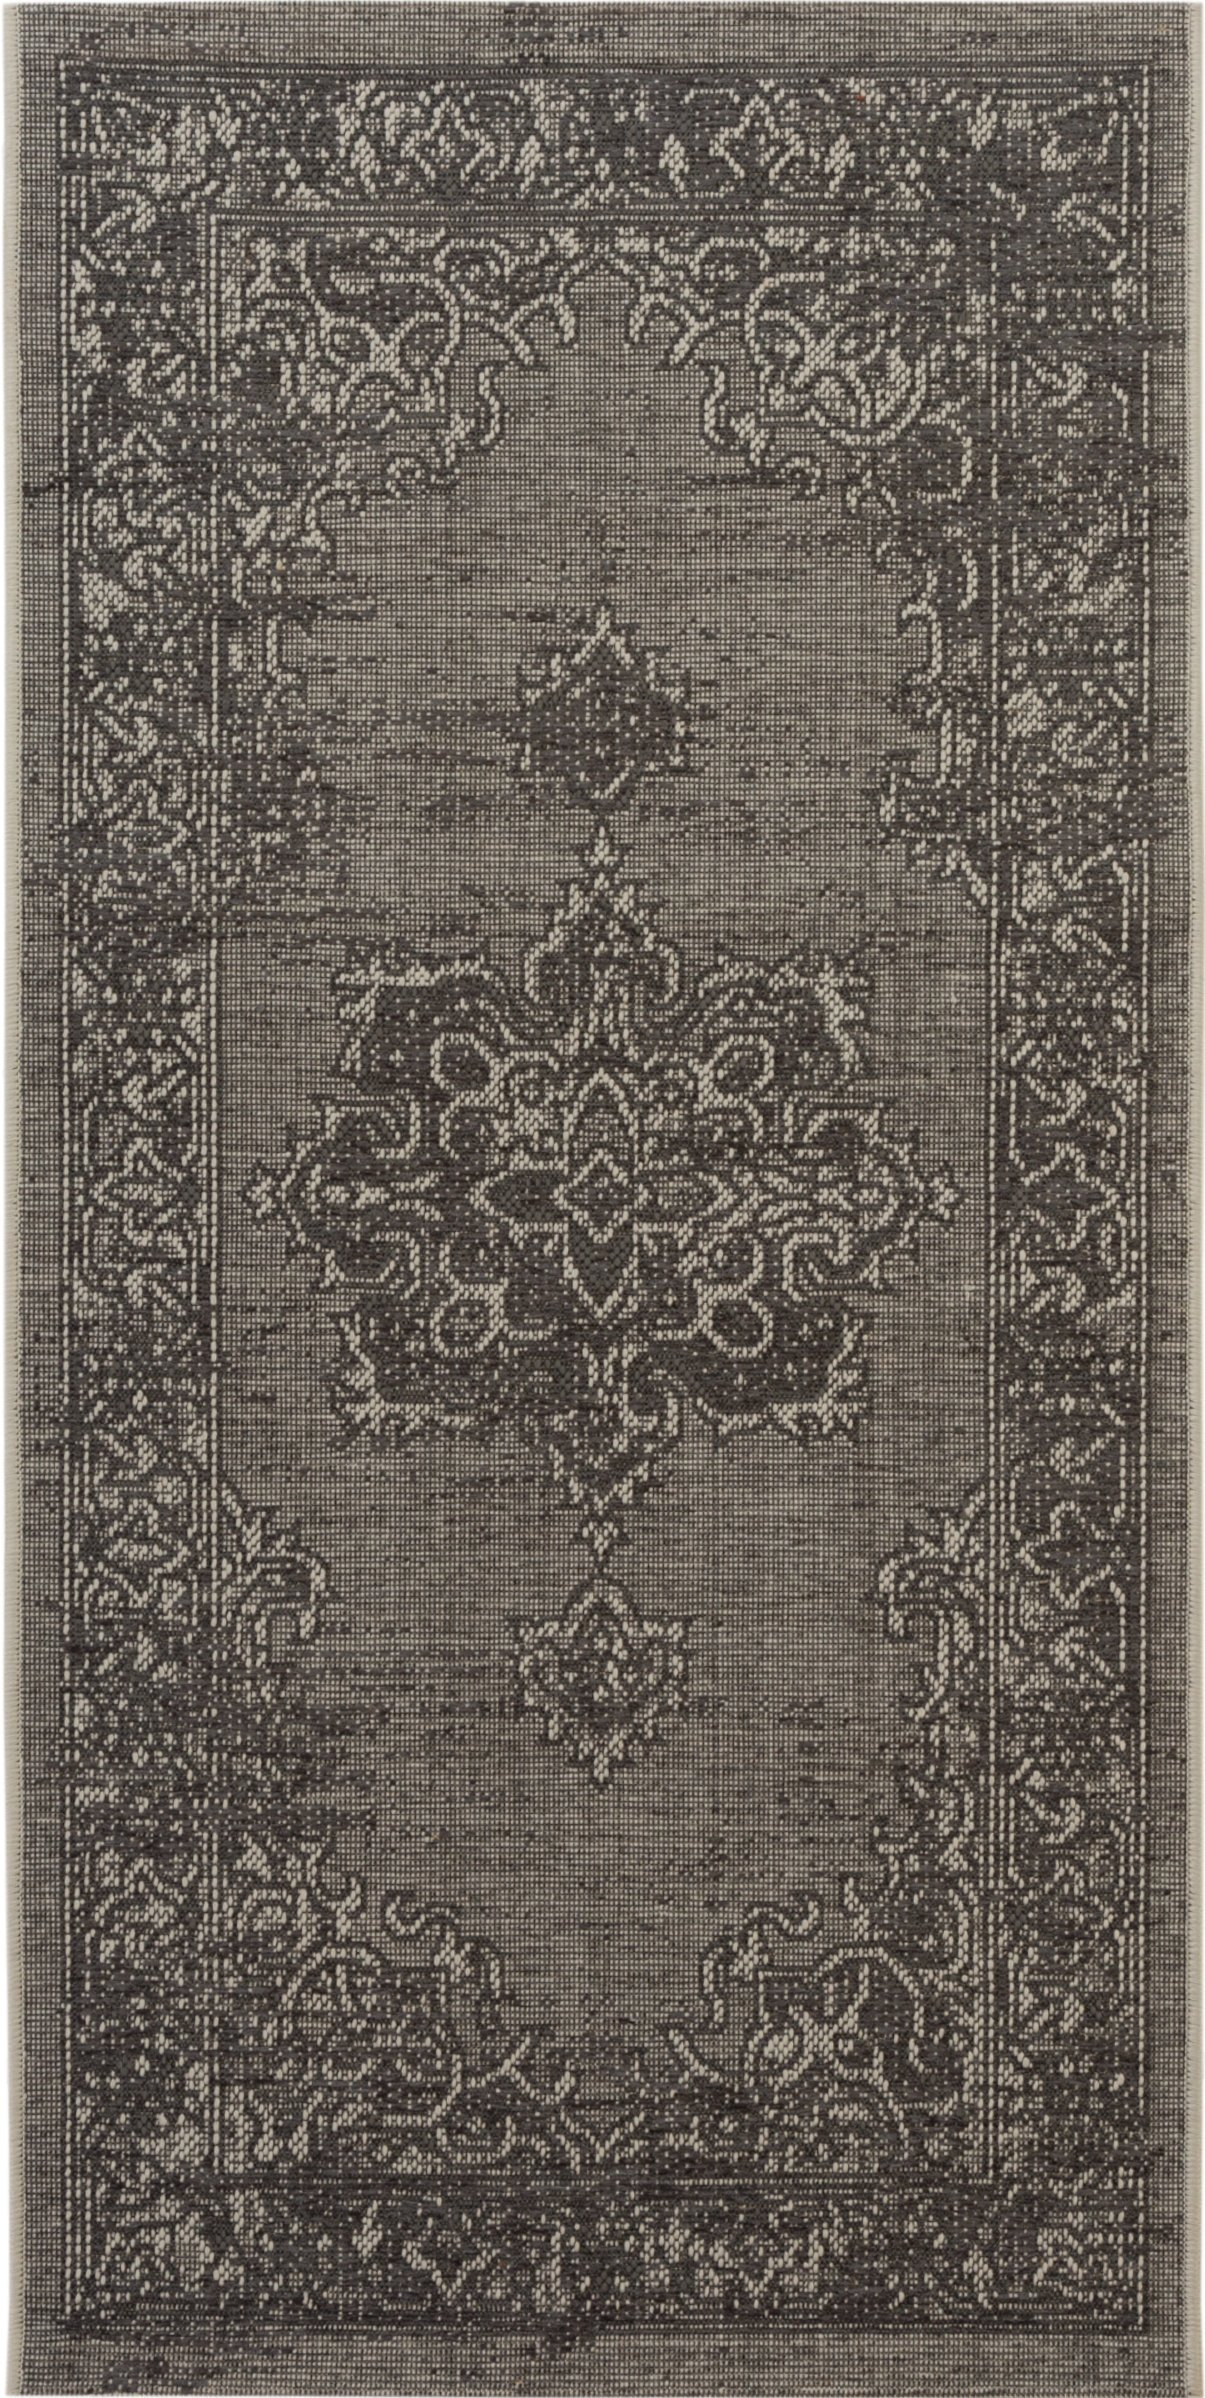 Safavieh Palazzo Collection PAL124-78124 Light Grey and Anthracite Area Rug (2'6'' x 5')